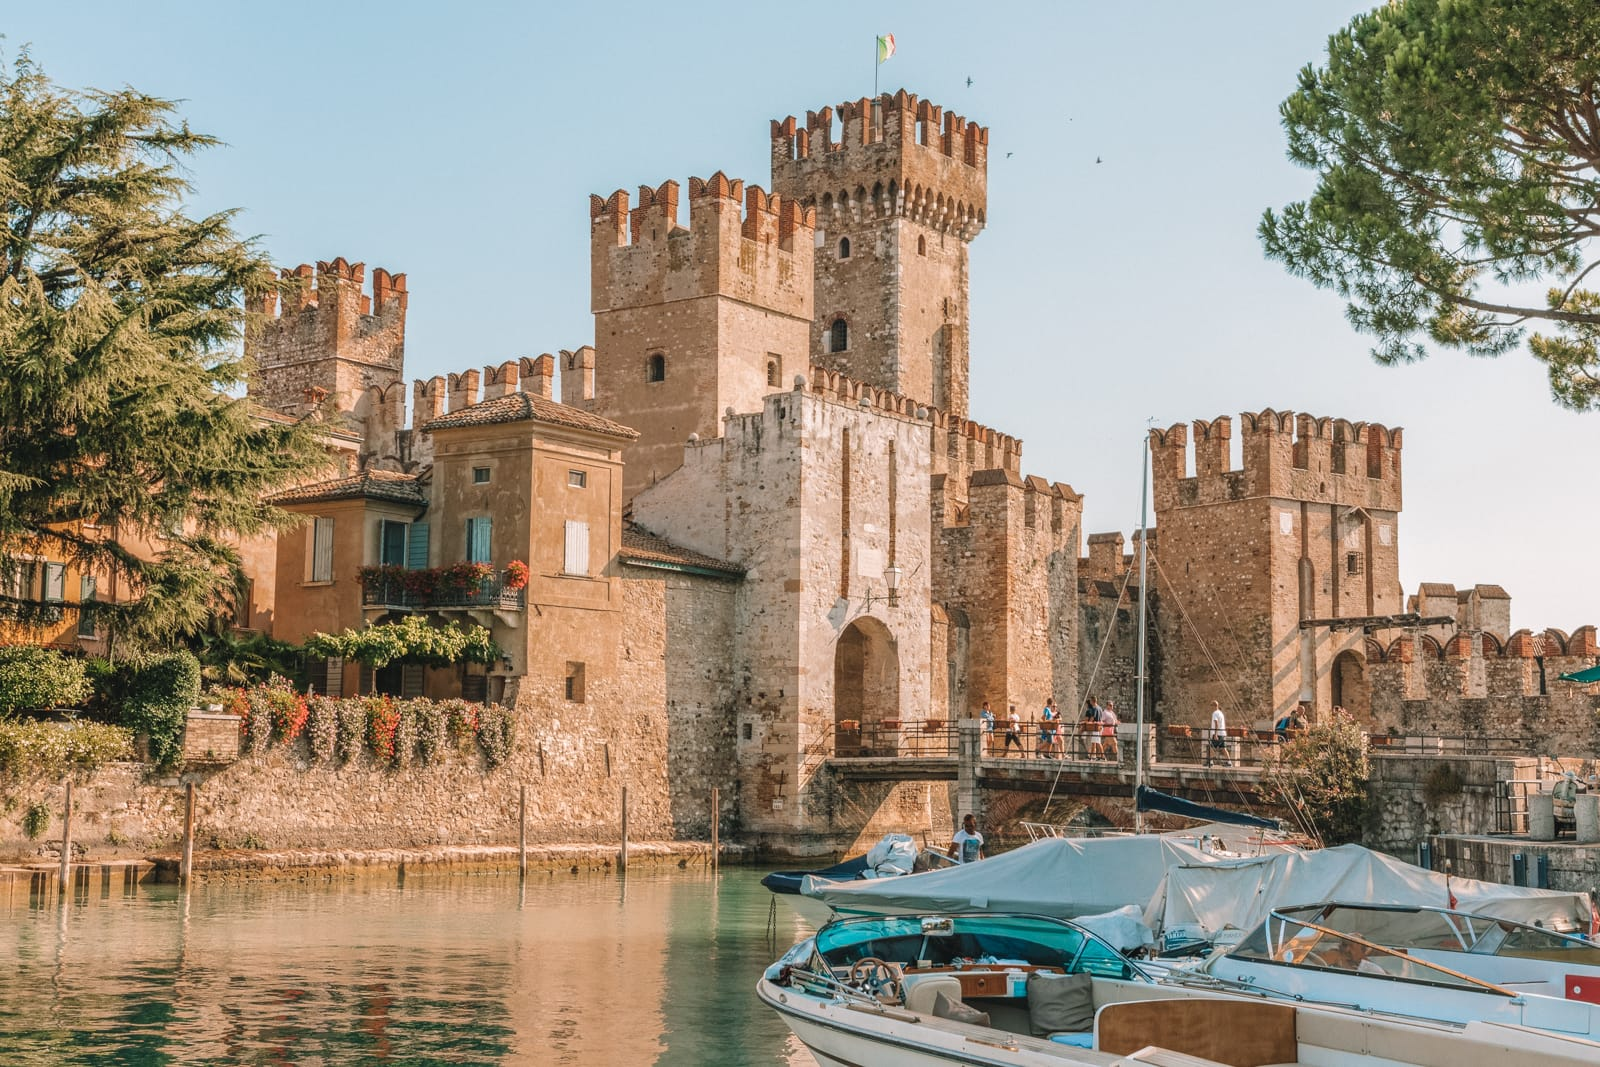 10 Very Best Castles In Italy To Visit (2)